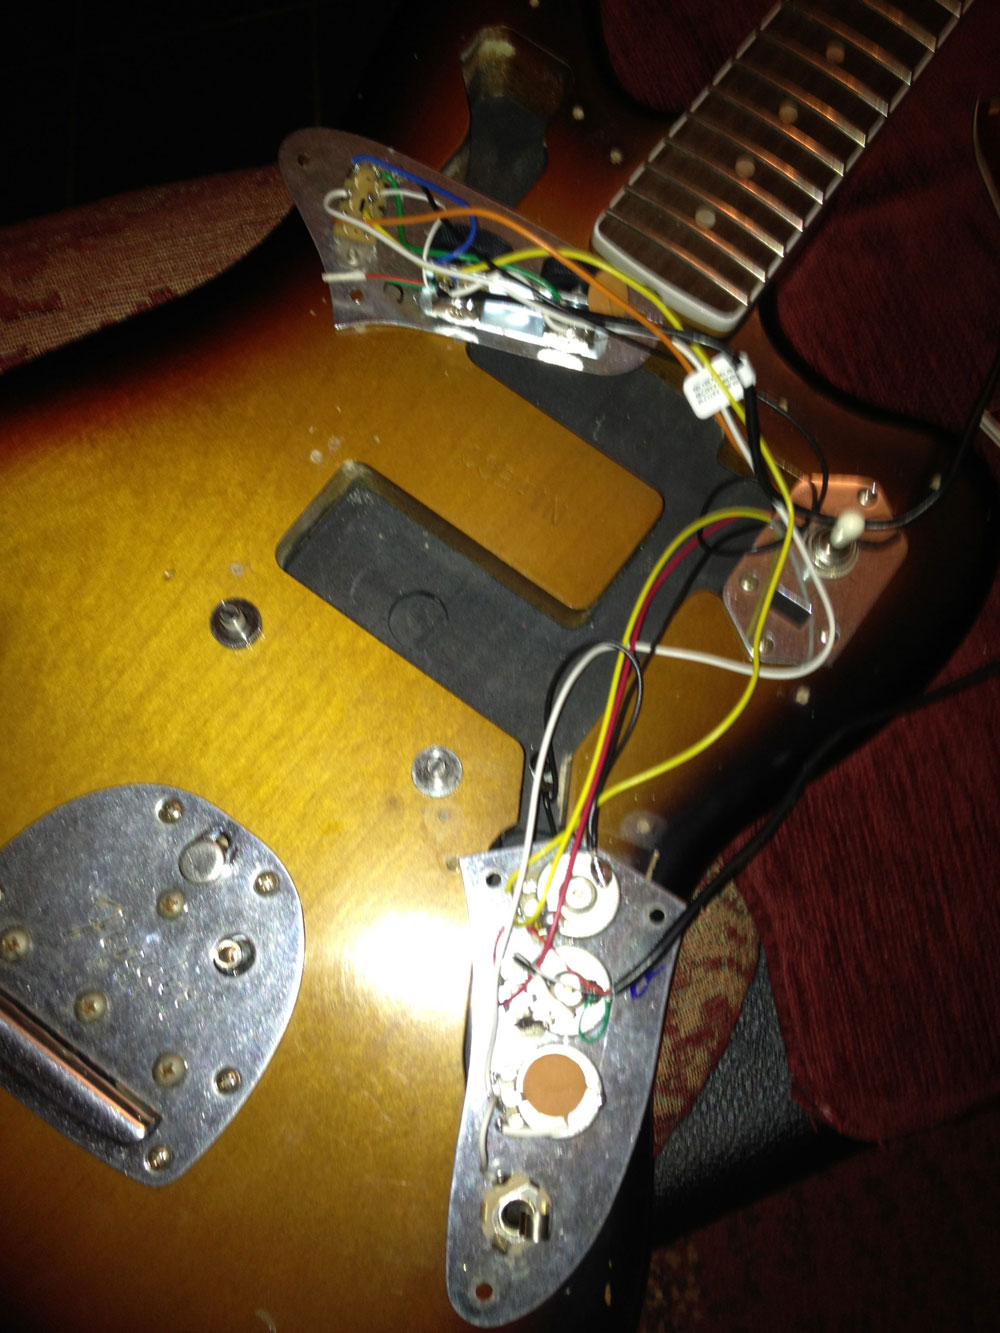 Fender Jaguar Switch Diagram Quick Start Guide Of Wiring Bass U00ae Forums U2022 View Topic Kurt Cobain Schematic